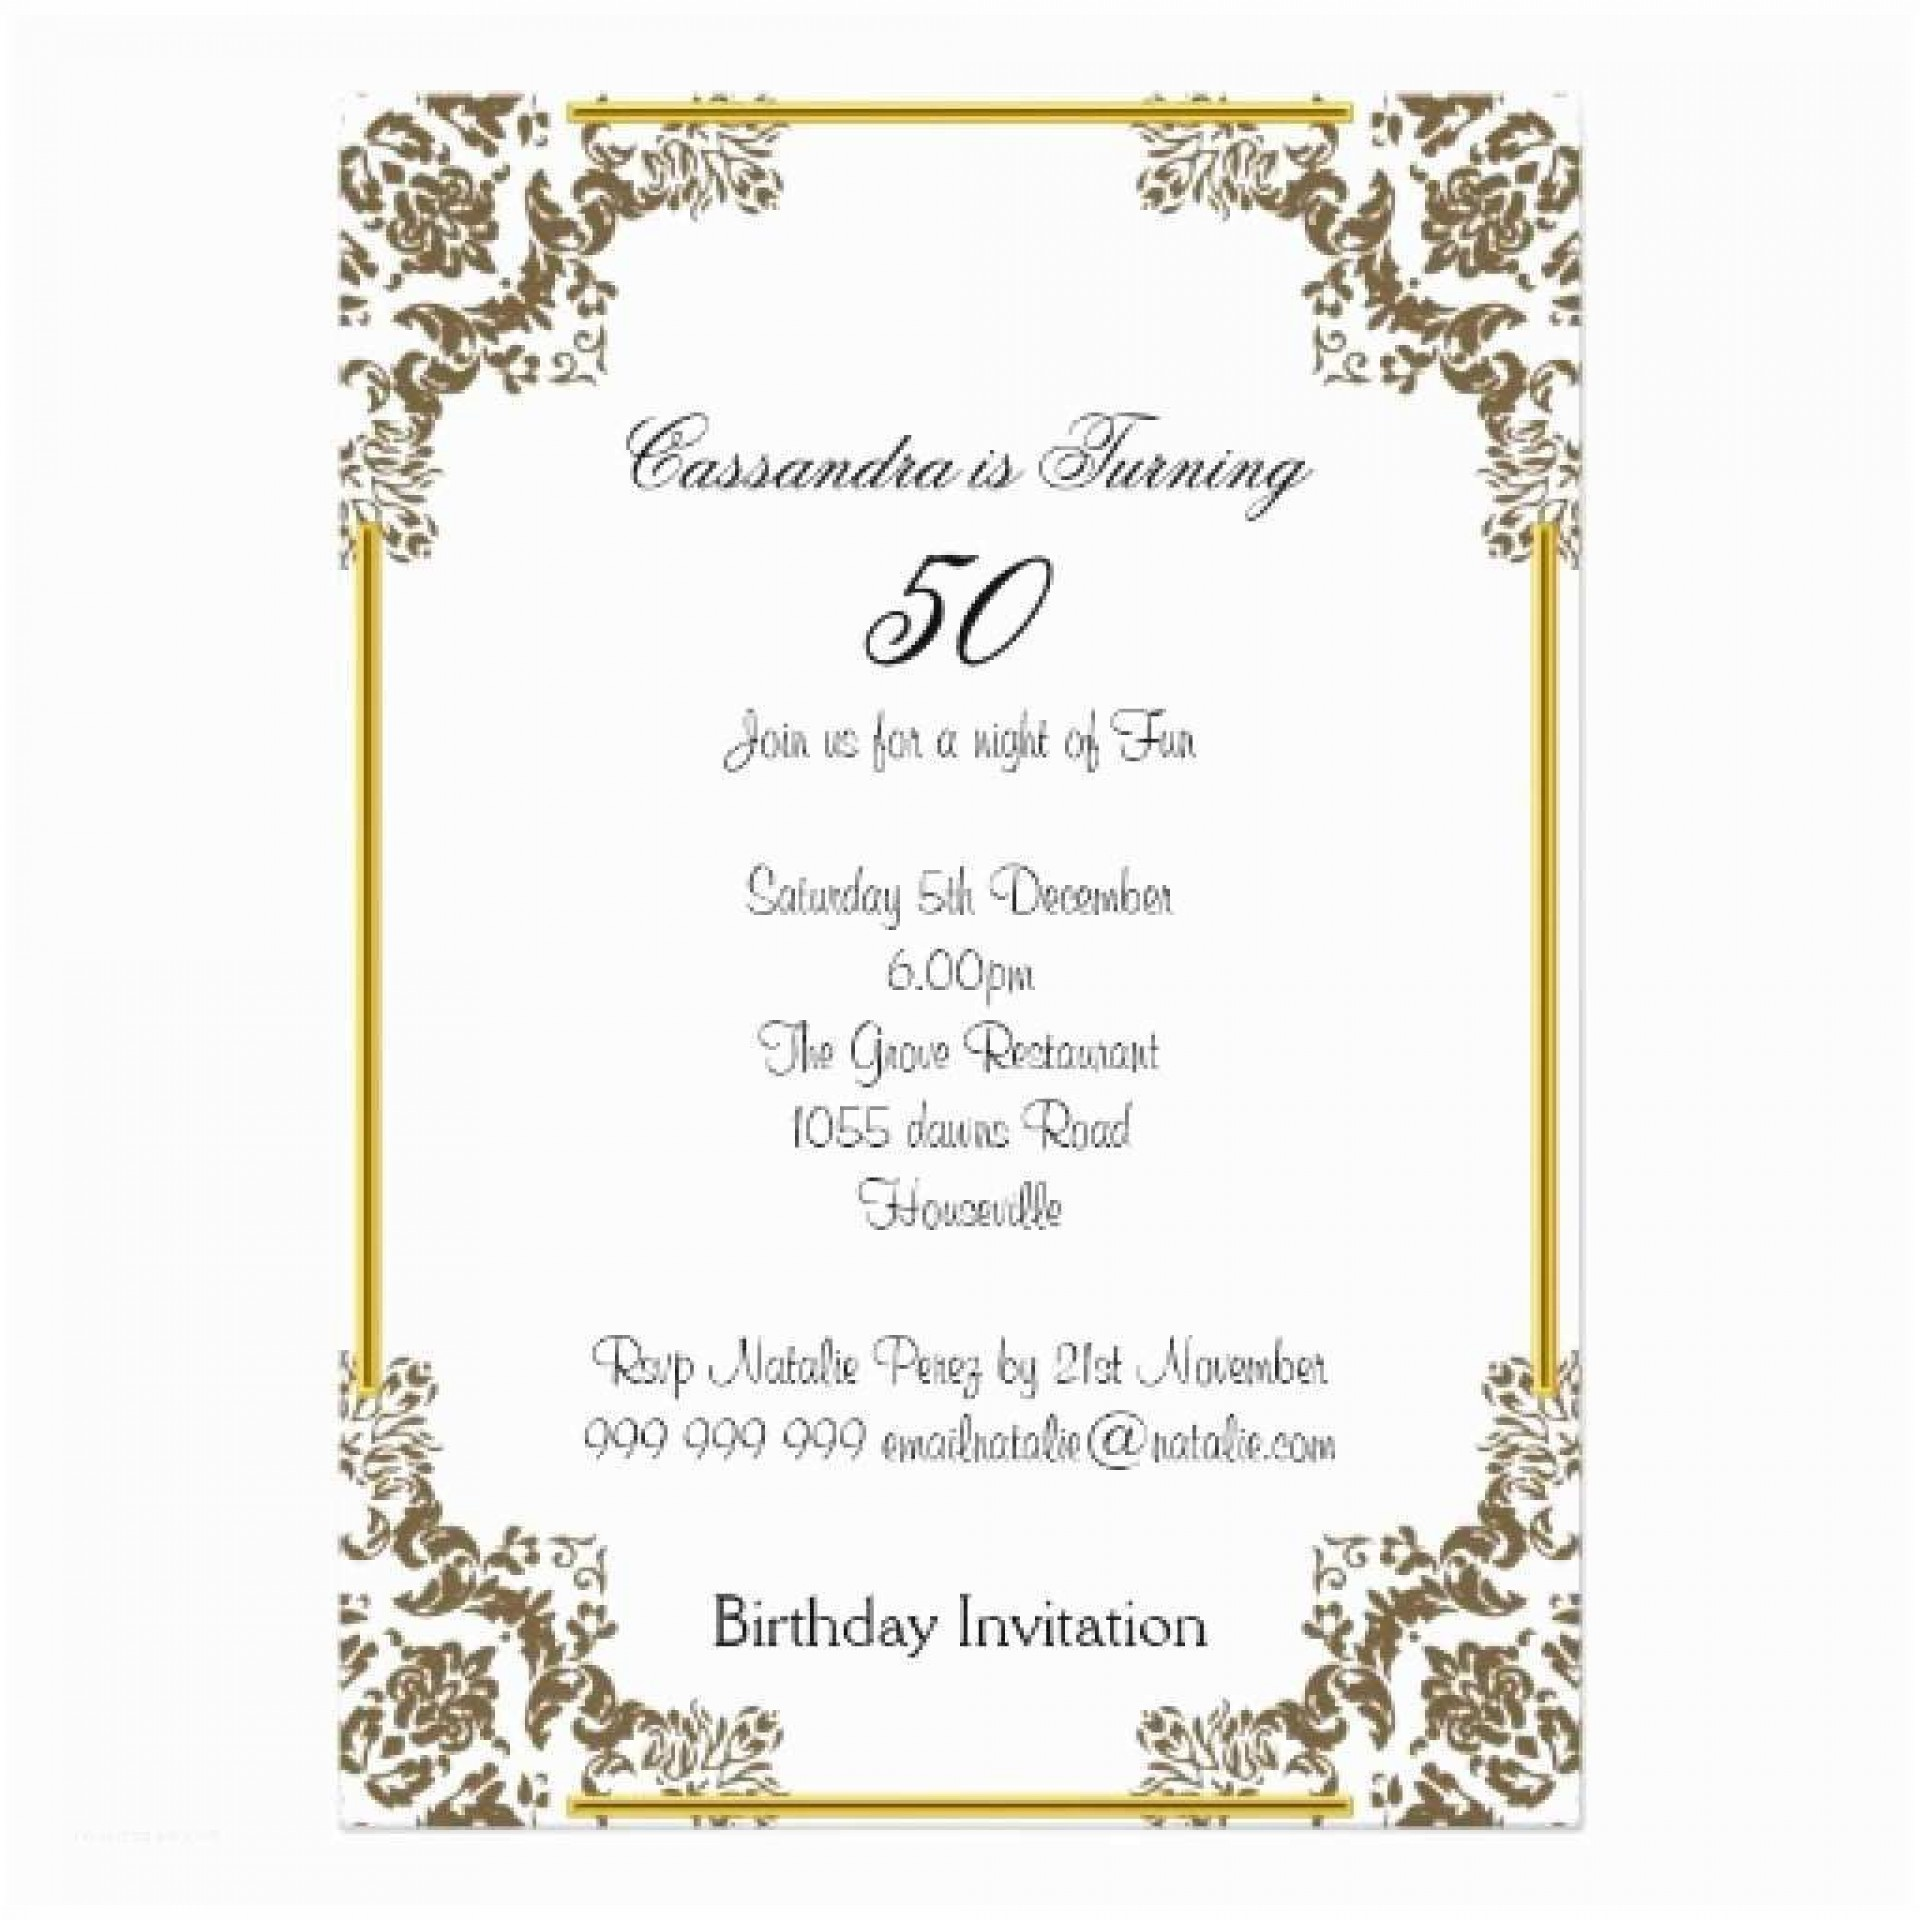 007 Remarkable 60th Birthday Invite Template Idea  Templates Funny Invitation Free Party1920